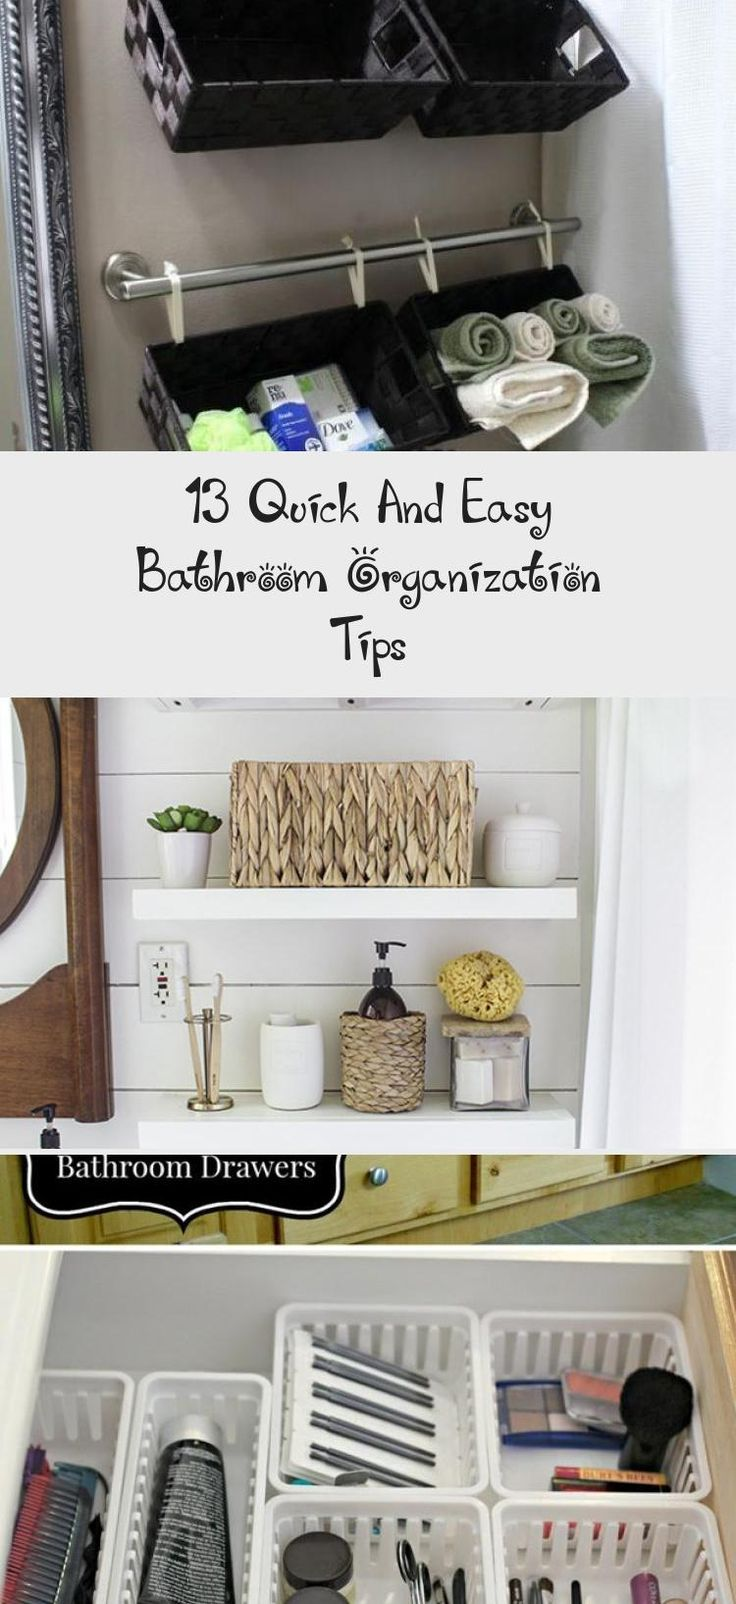 13 Quick And Easy Bathroom Organization Tips   – Bathroom Ideas